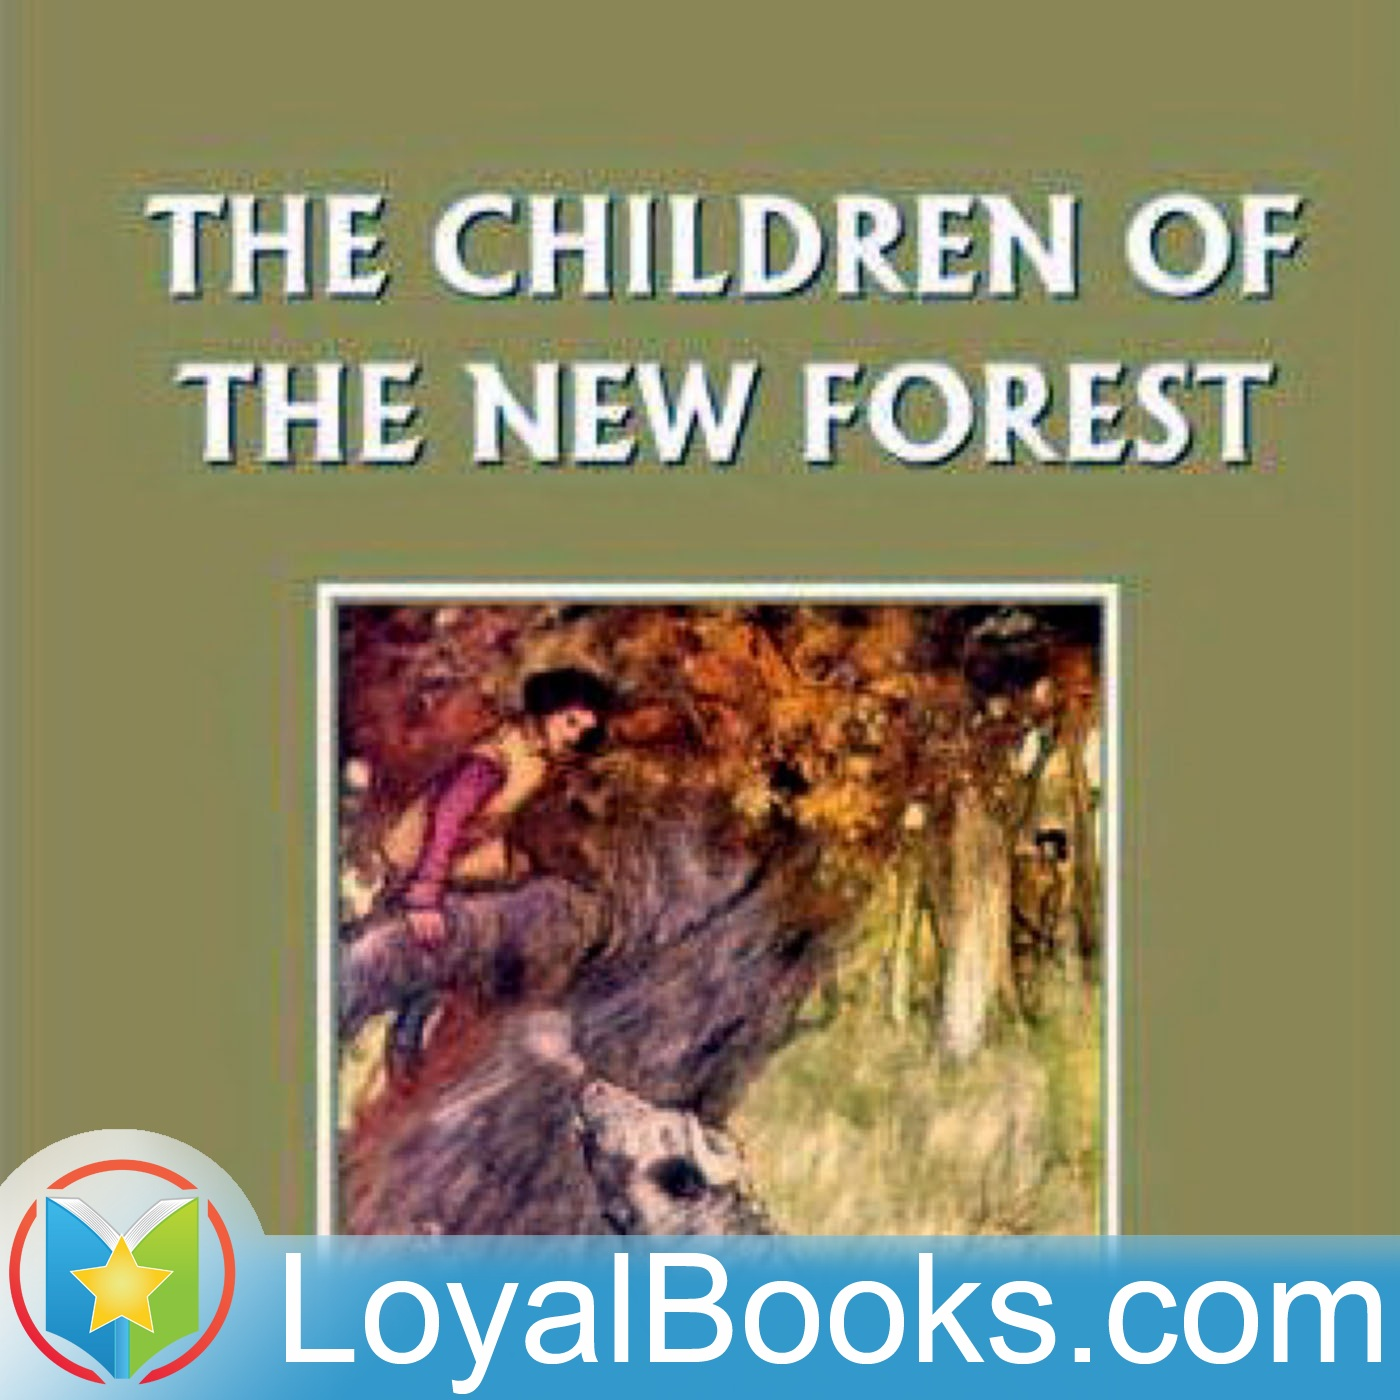 <![CDATA[The Children of the New Forest by Frederick Marryat]]>